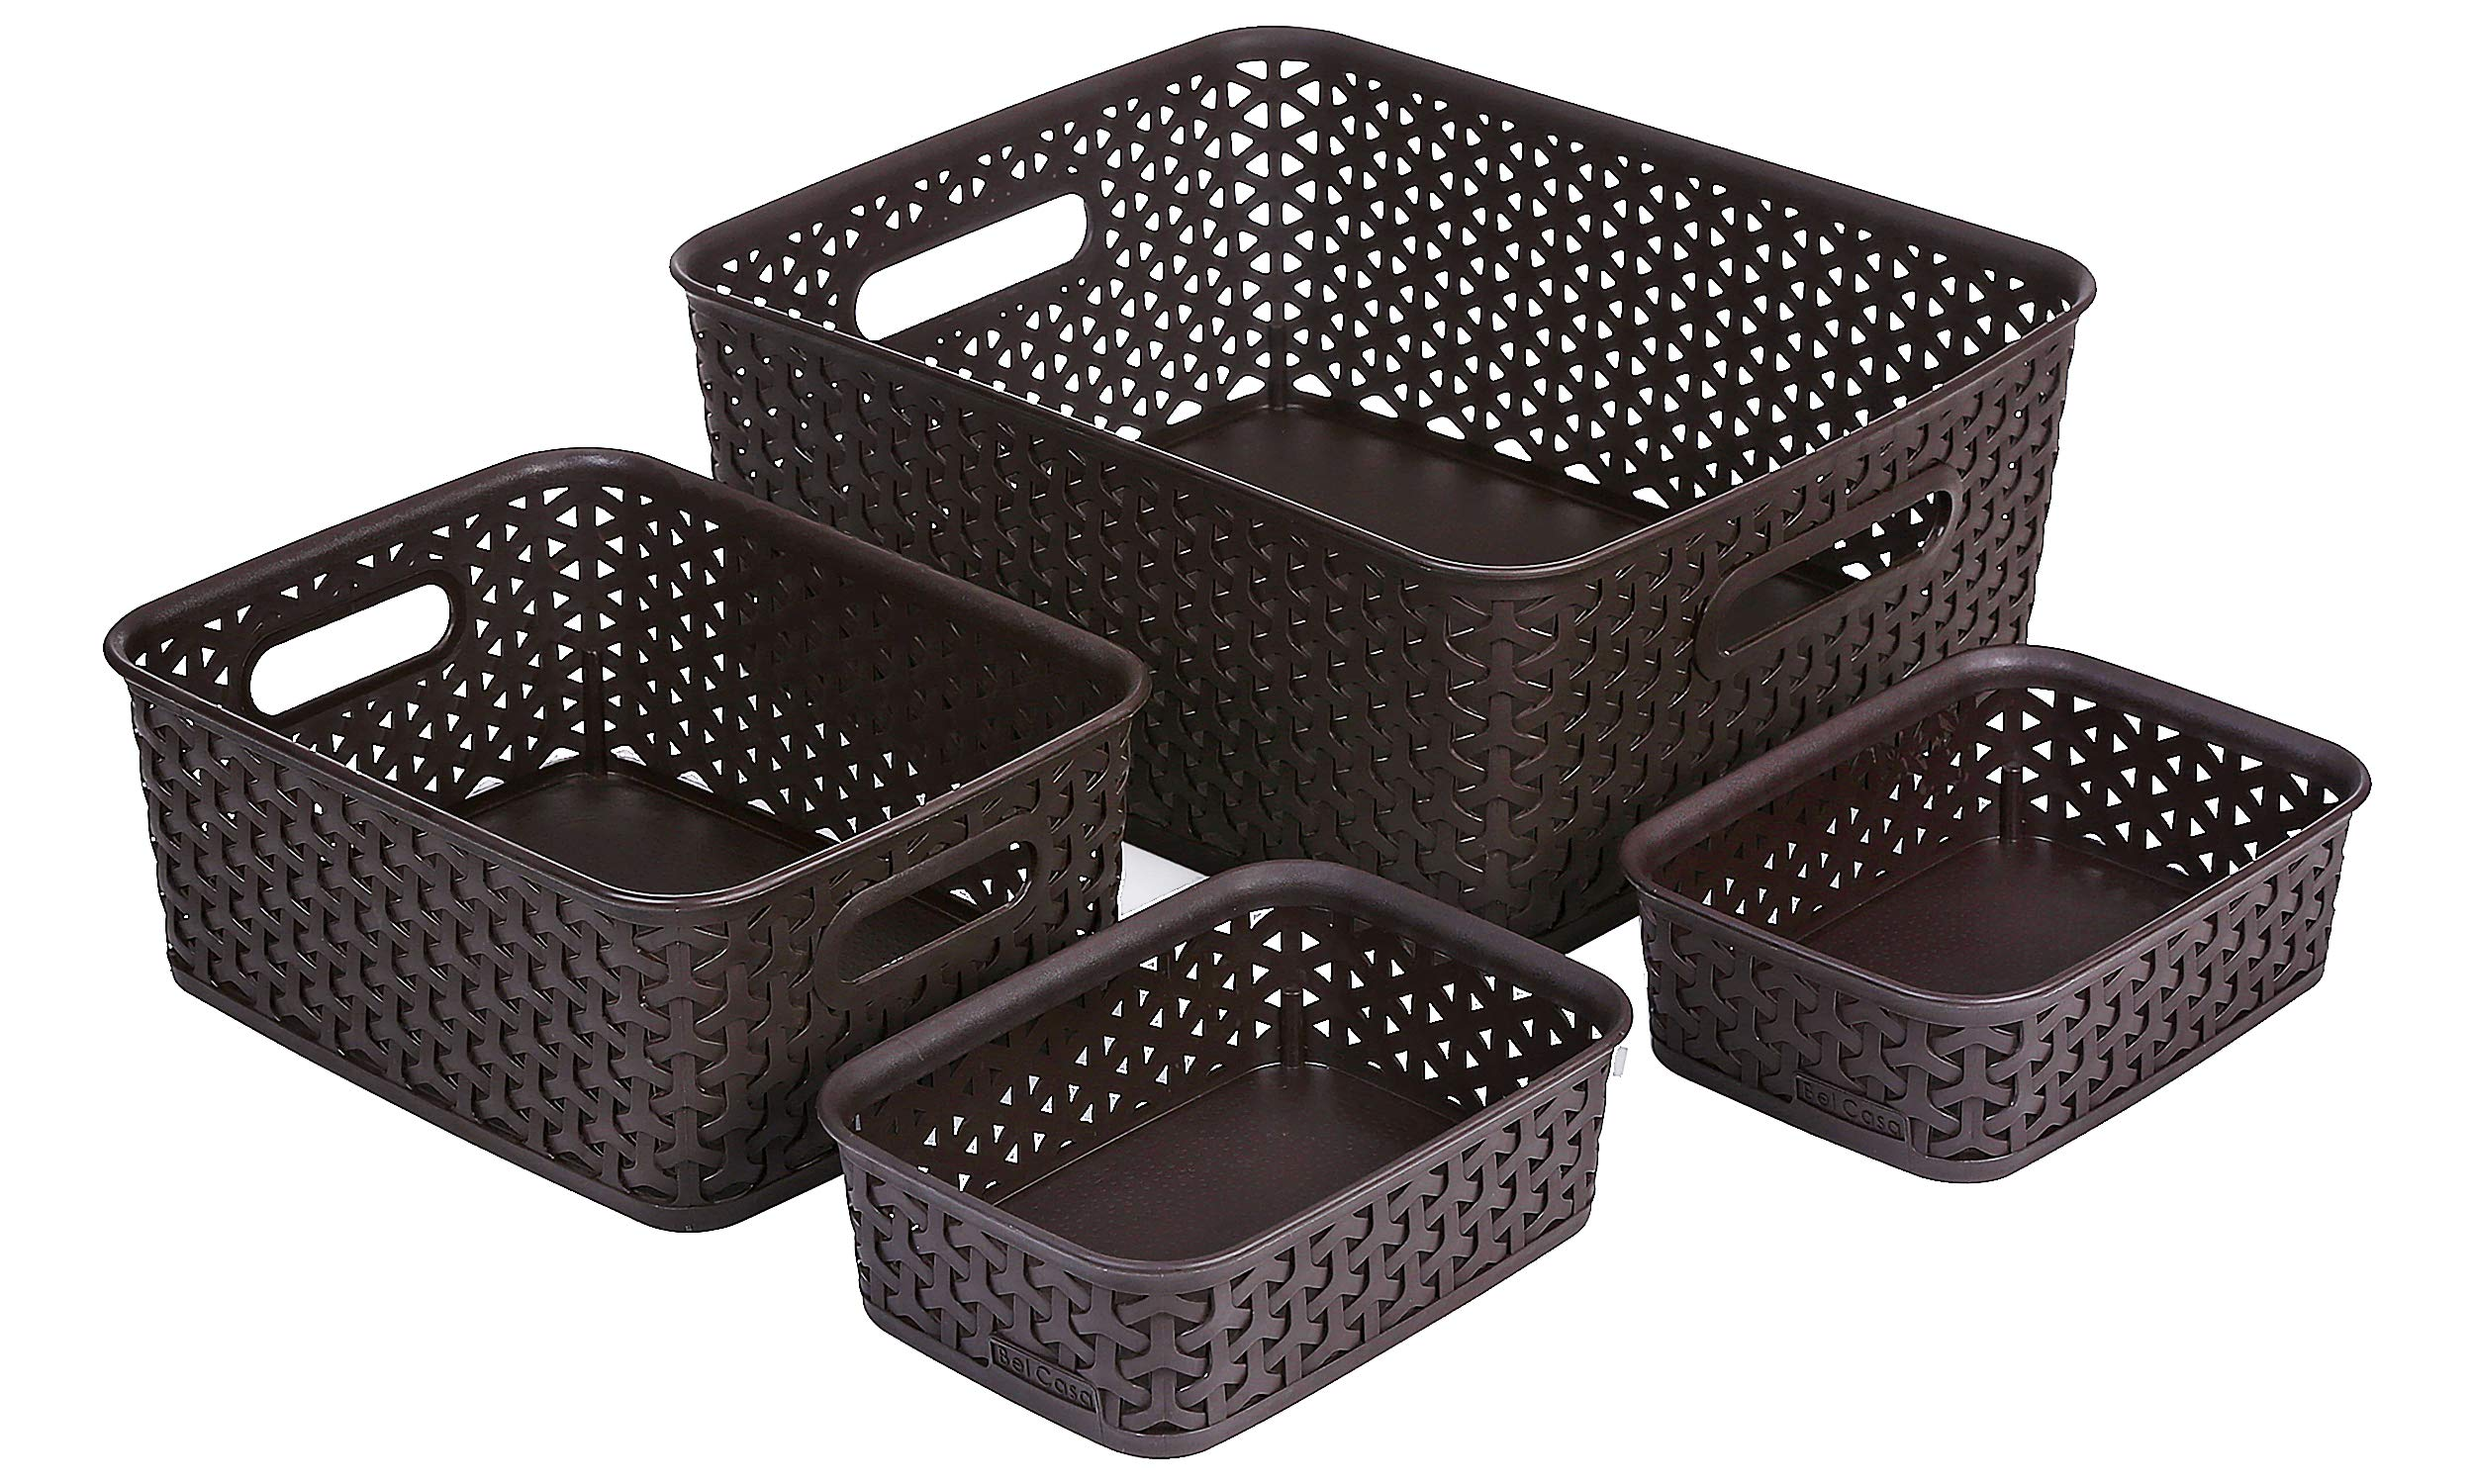 Bel Casa ROYAL Baskets for Storage Set of 4 Pieces (Medium, Small and A6 x 2), Brown product image